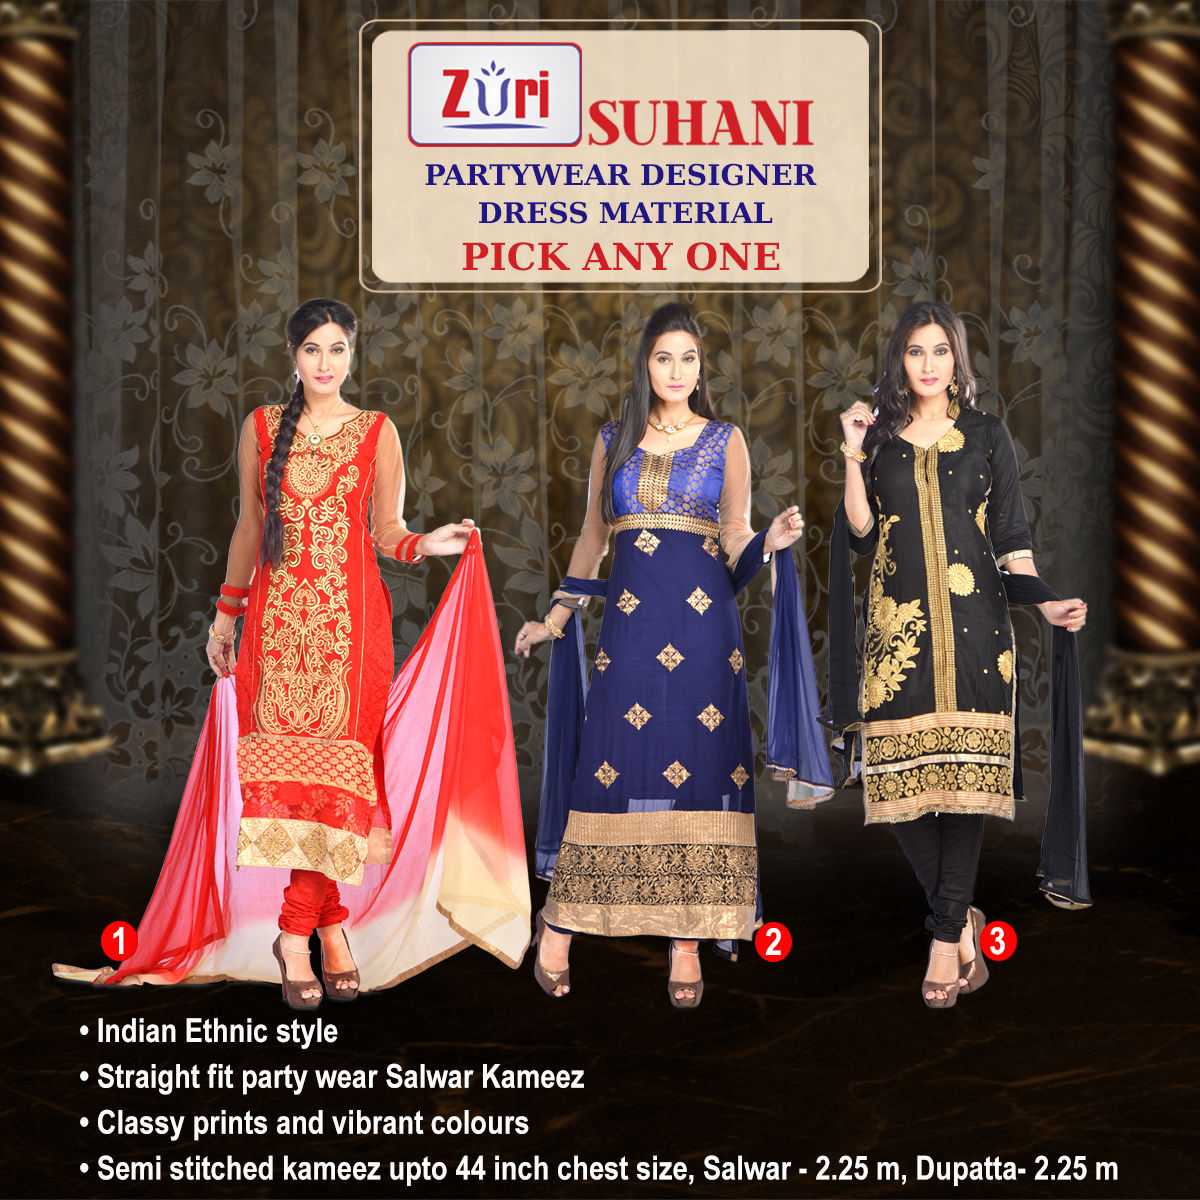 Buy Suhani Partywear Designer Dress Material By Zuri Ddm1 Pick One Any